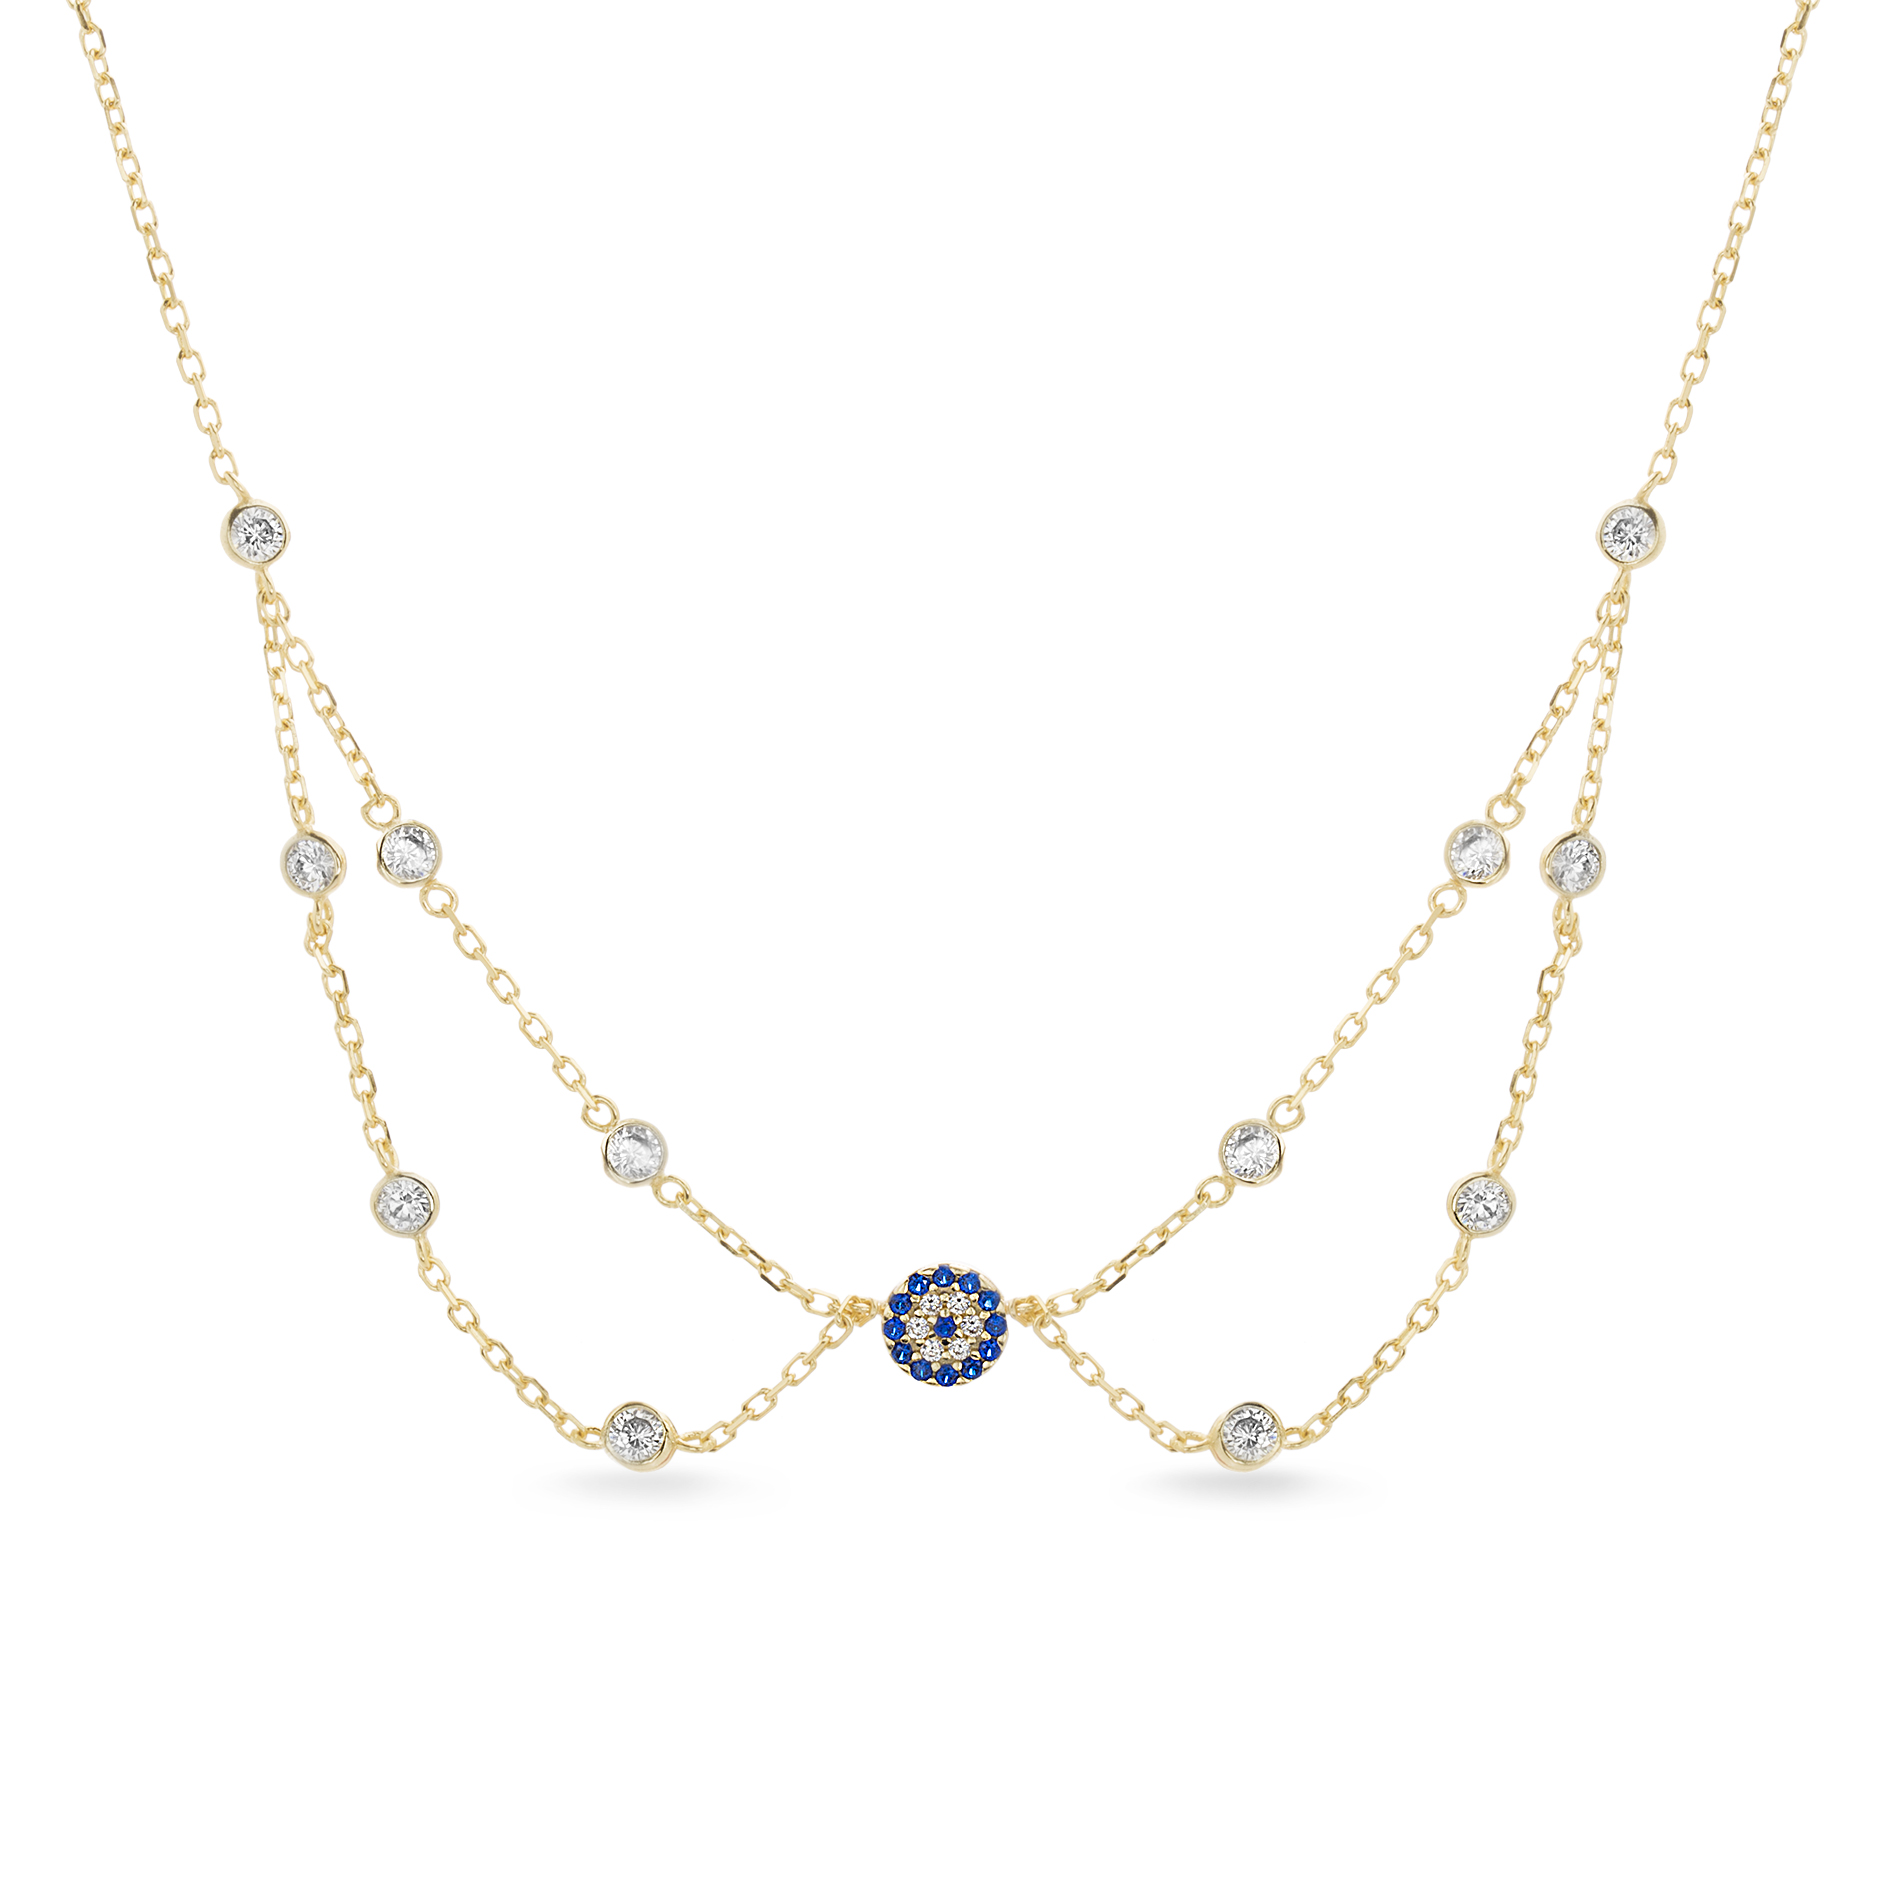 Cubic Zirconia Evil Eye Layered Choker Necklace in Yellow Gold over Sterling Silver